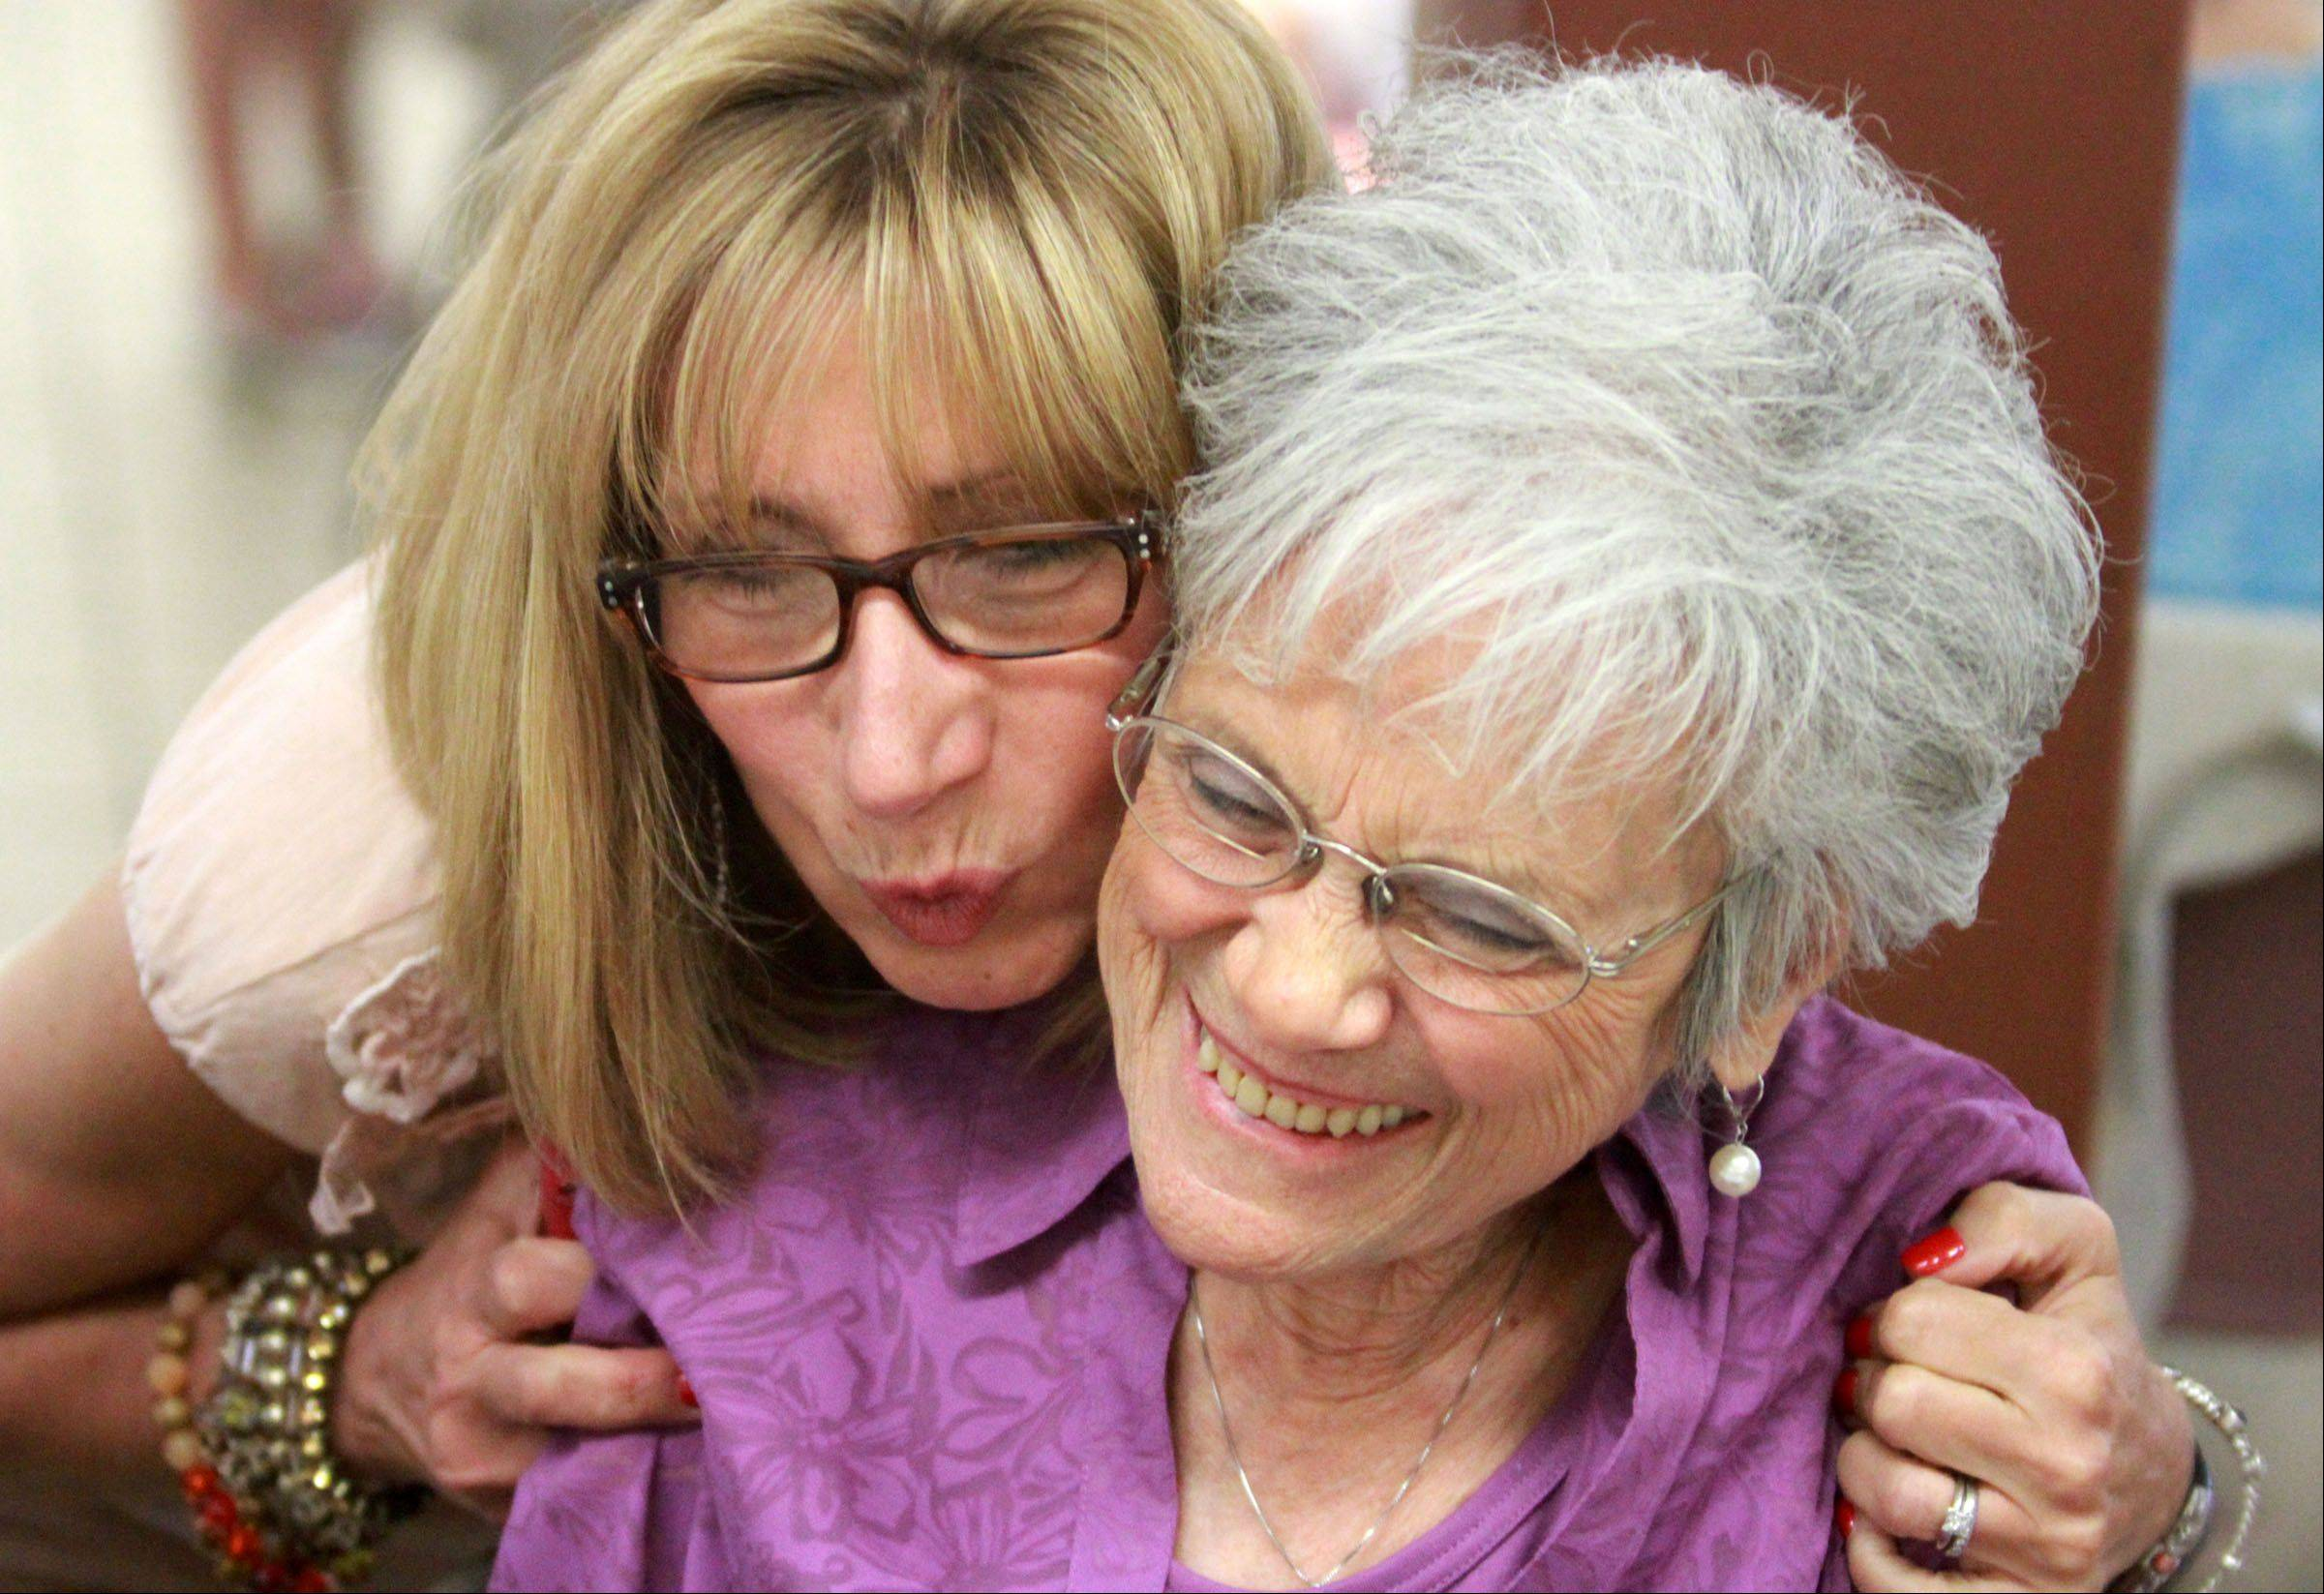 Angie Panagukos, of Hoffman Estates, gives Terri Kolbus, of Palatine, a hug, after not seeing each other since last year, as St. Theresa School in Palatine during a senior citizens luncheon and bingo Tuesday.